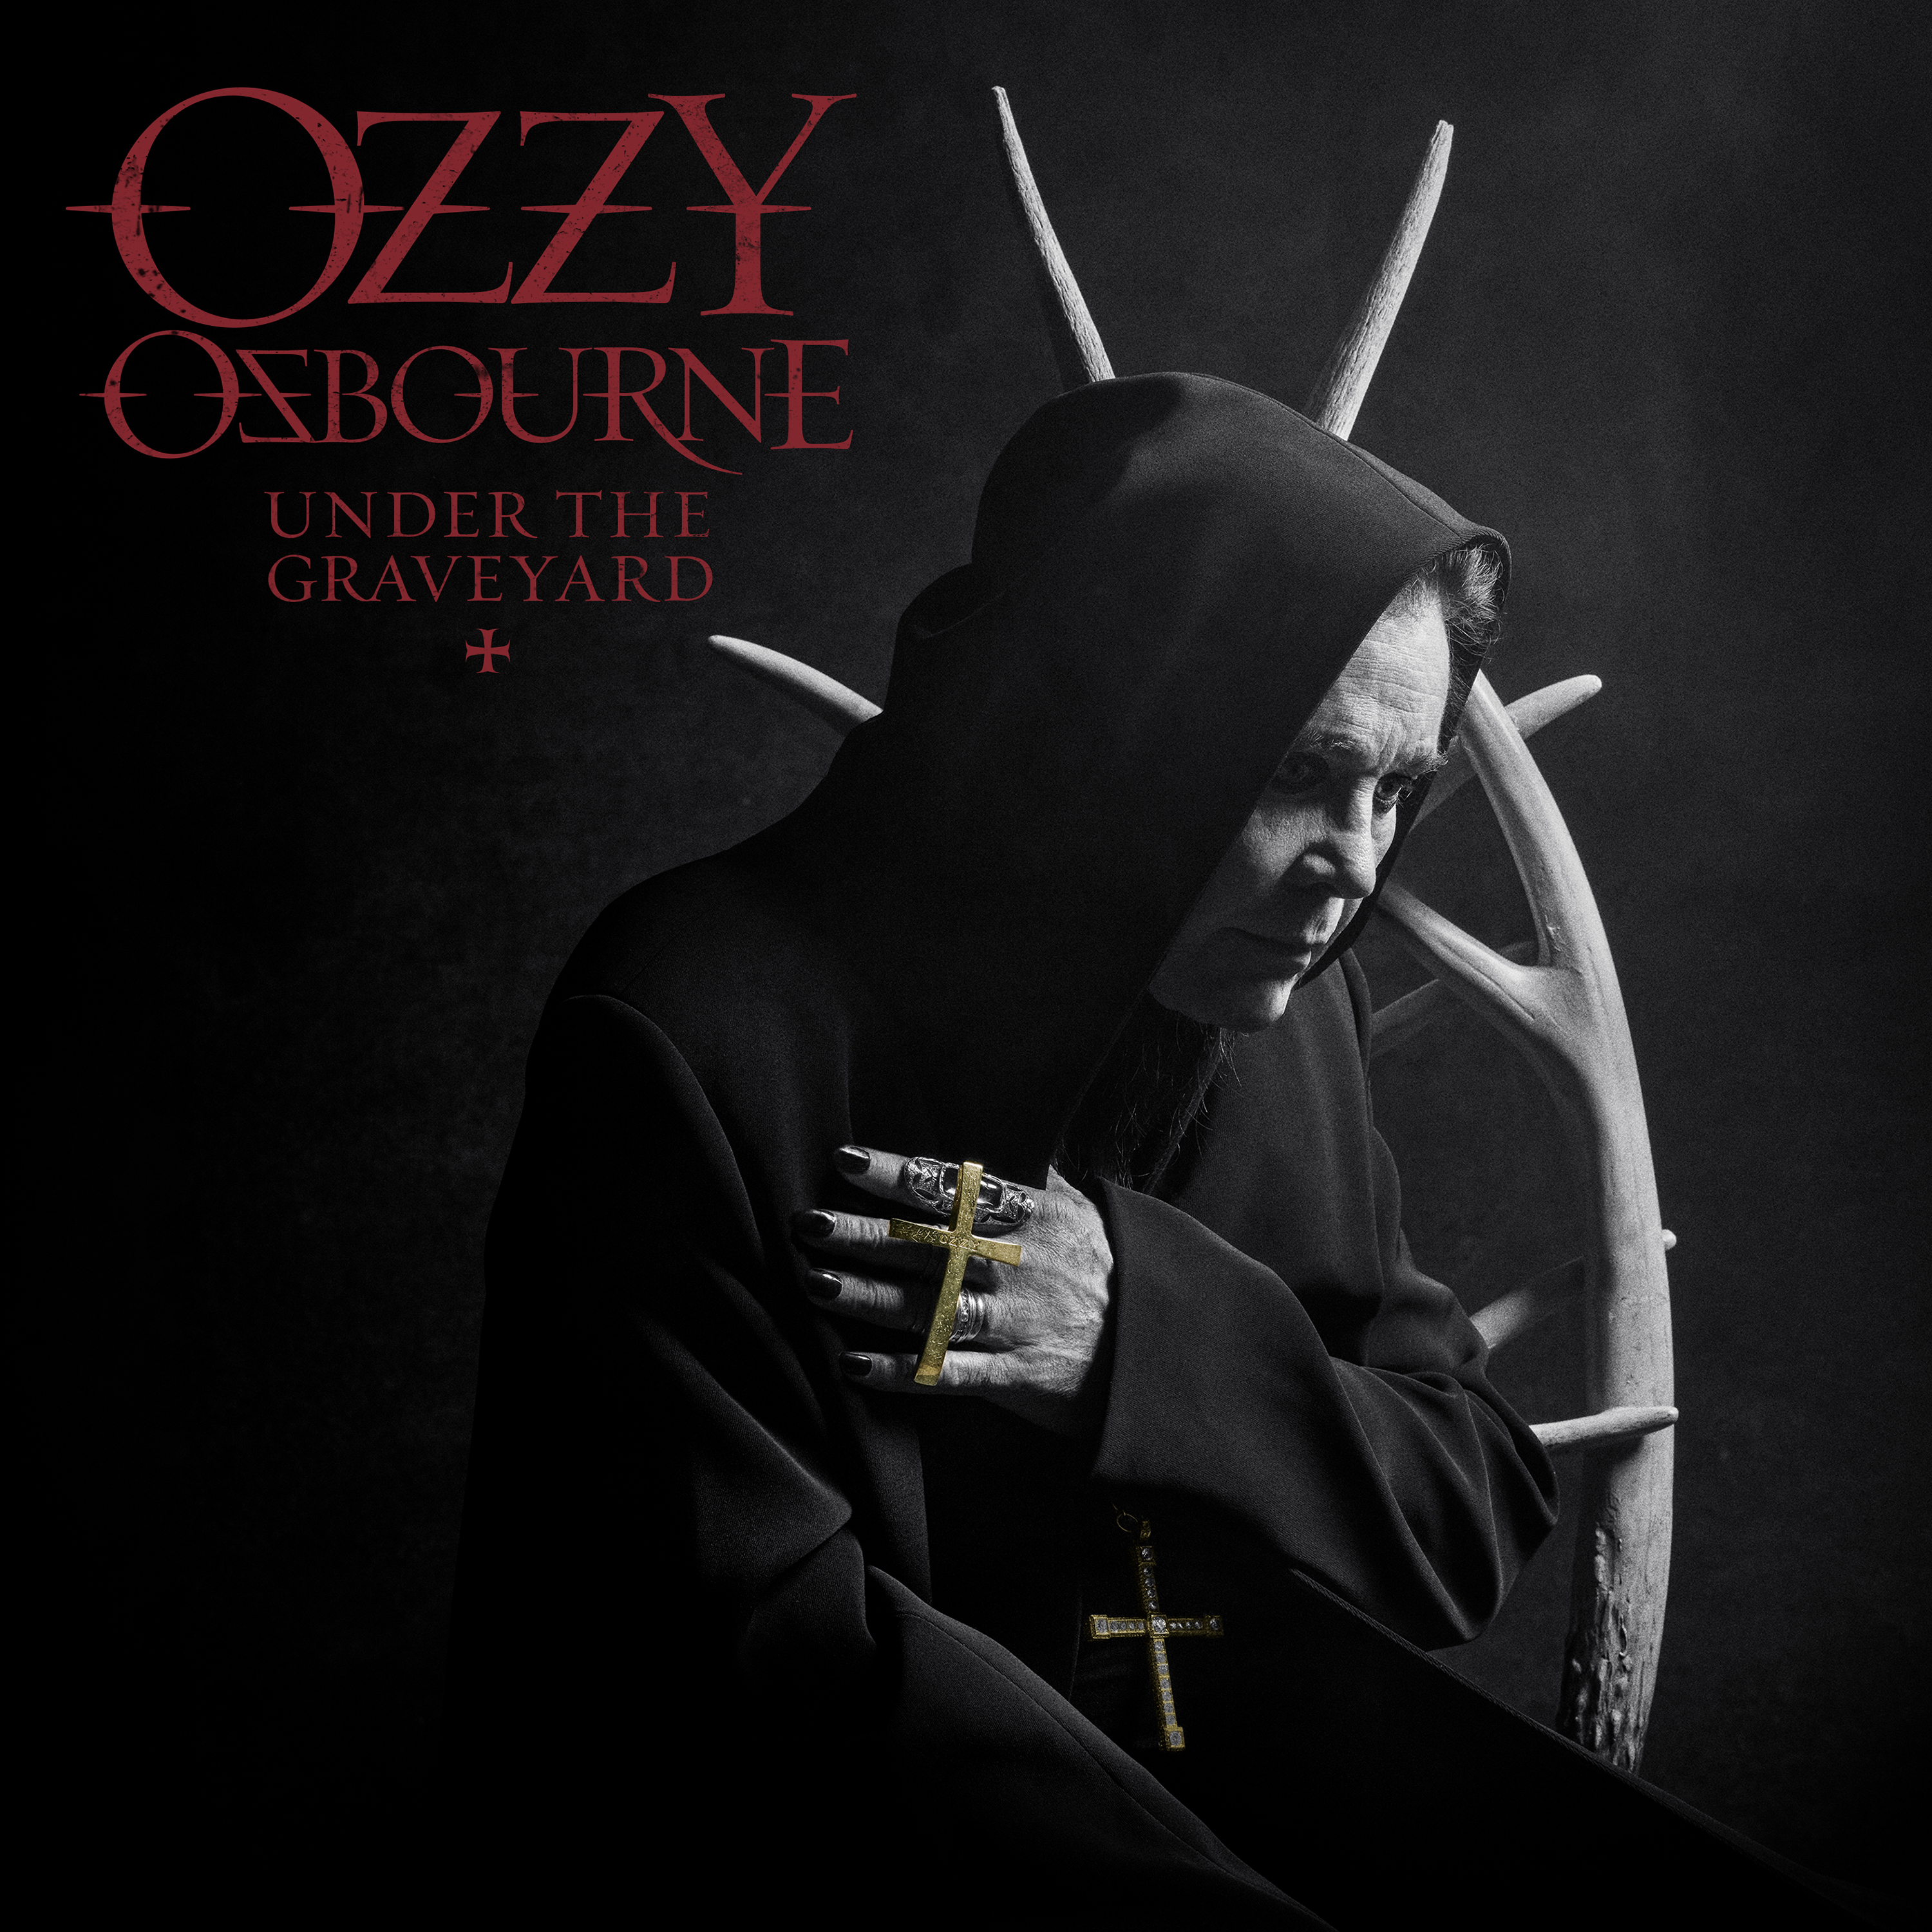 OZZY OSBOURNE TODAY RELEASES  'UNDER THE GRAVEYARD' FIRST SINGLE IN NEARLY 10 YEARS